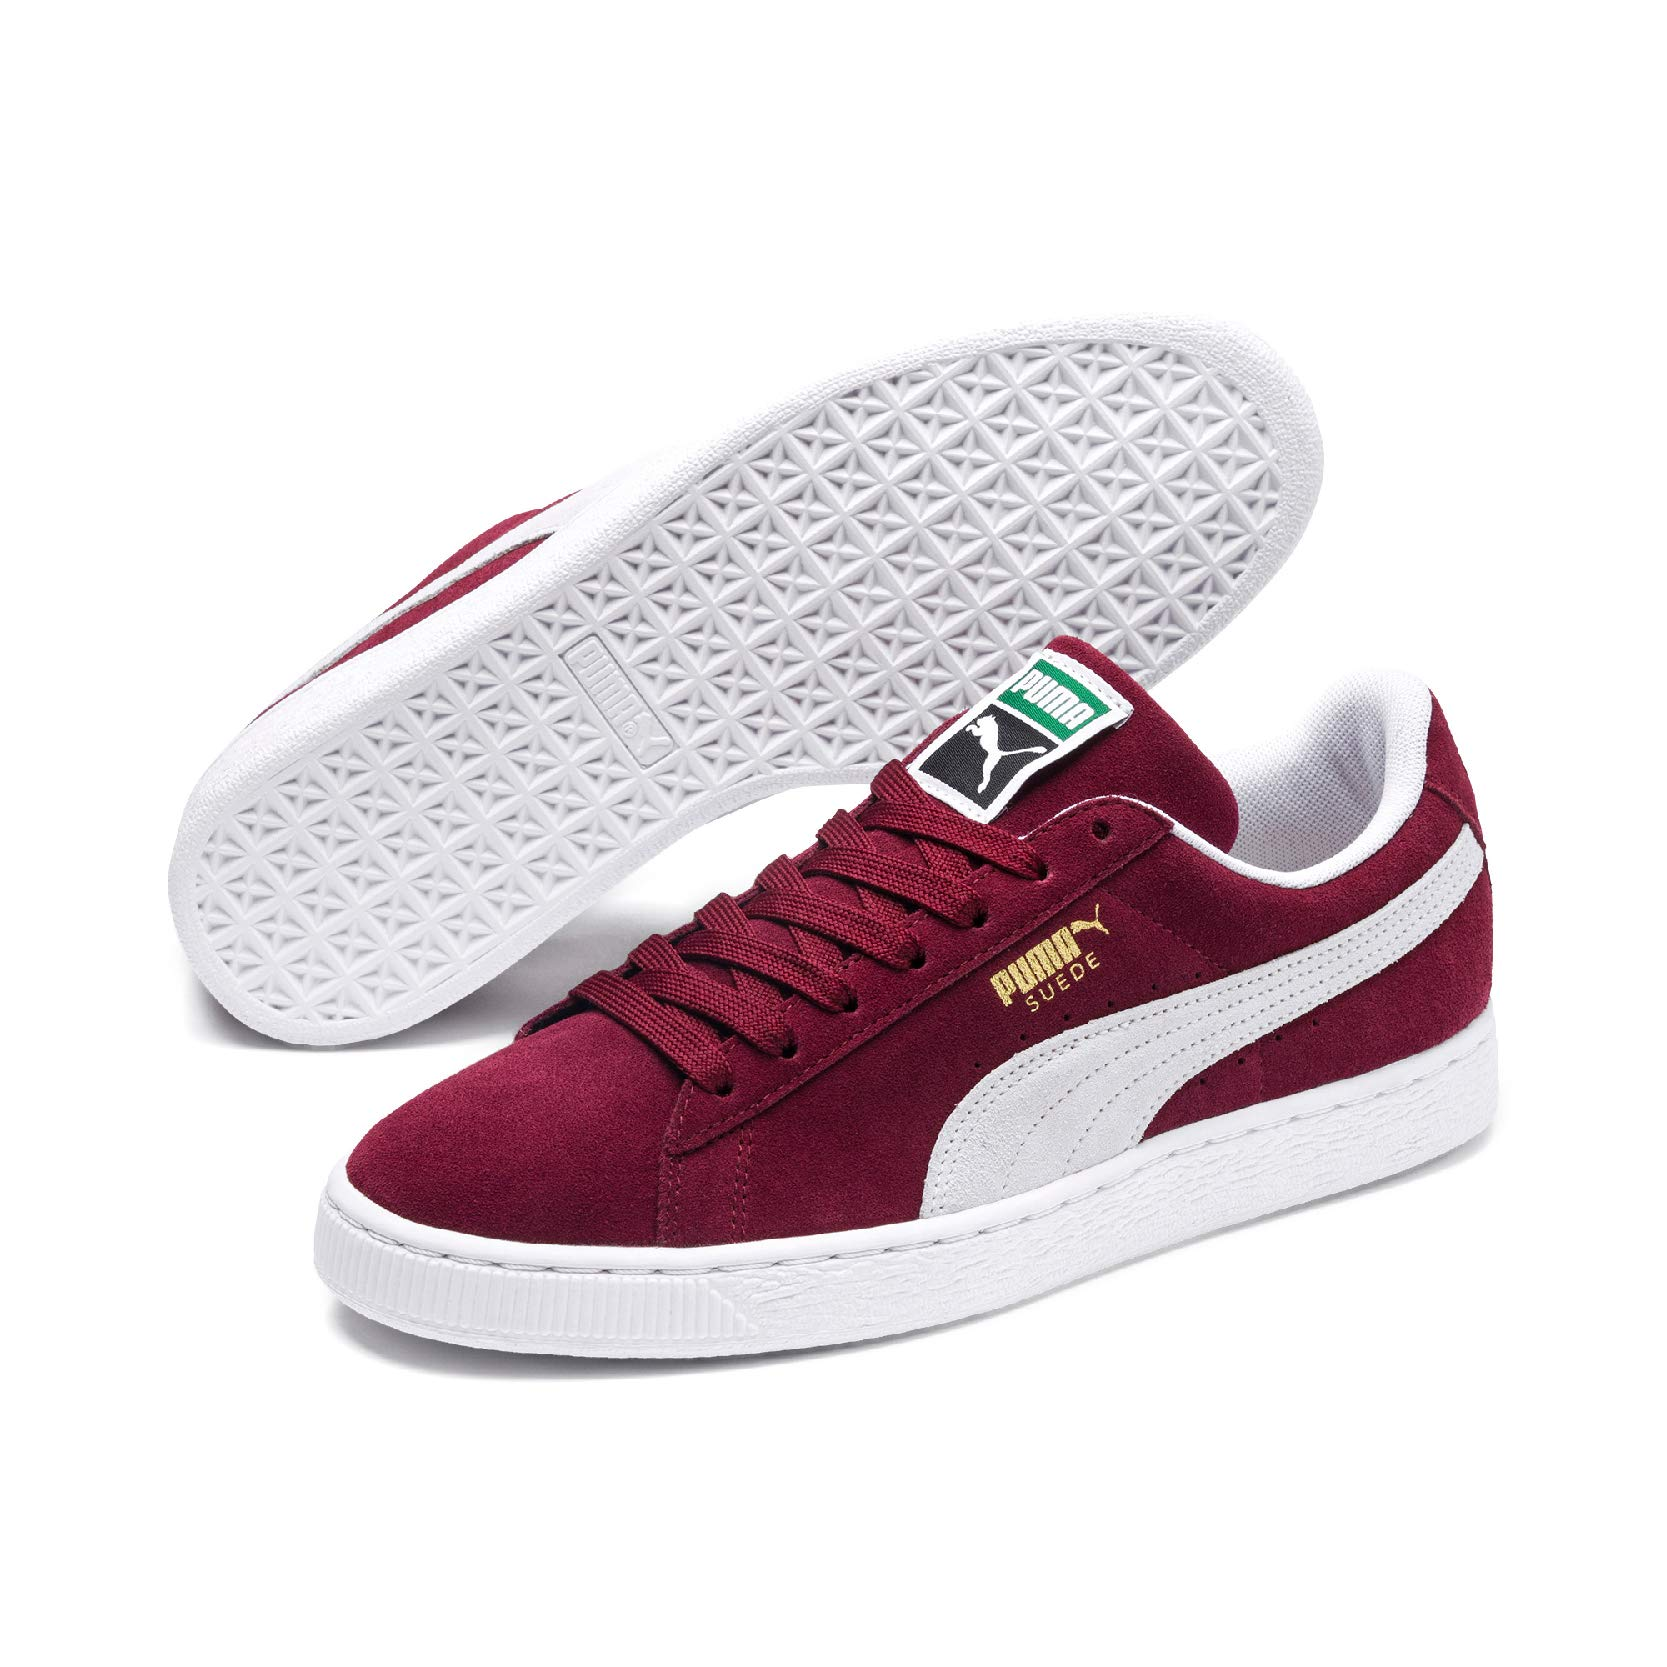 e81066b12d26 Puma Suede Classic+ Baskets Mode Mixte Adulte product image